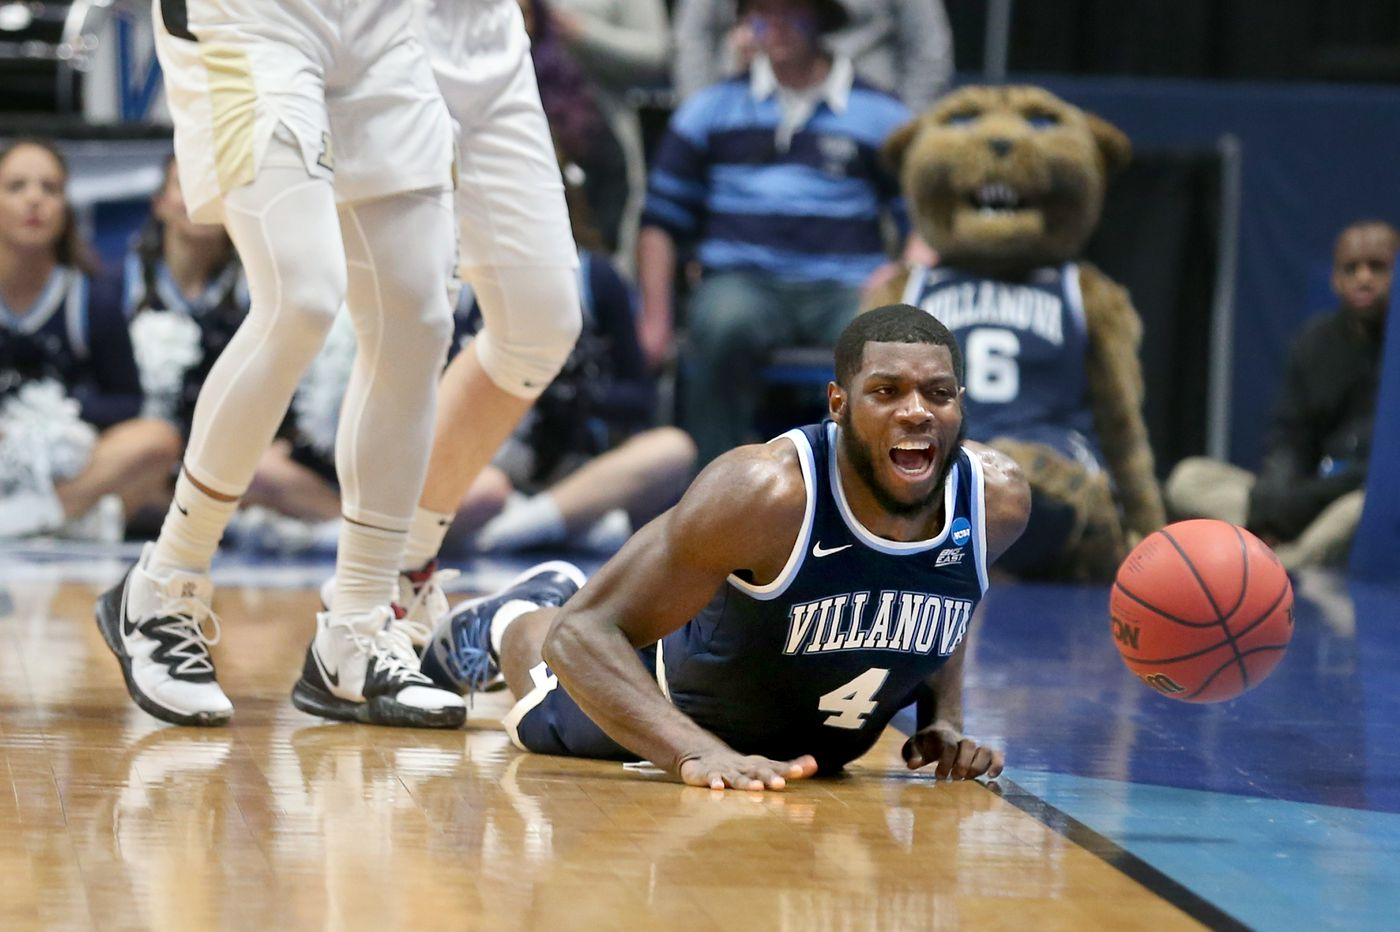 Purdue Men Humble Villanova, Advance To Sweet 16 For Third Straight Year